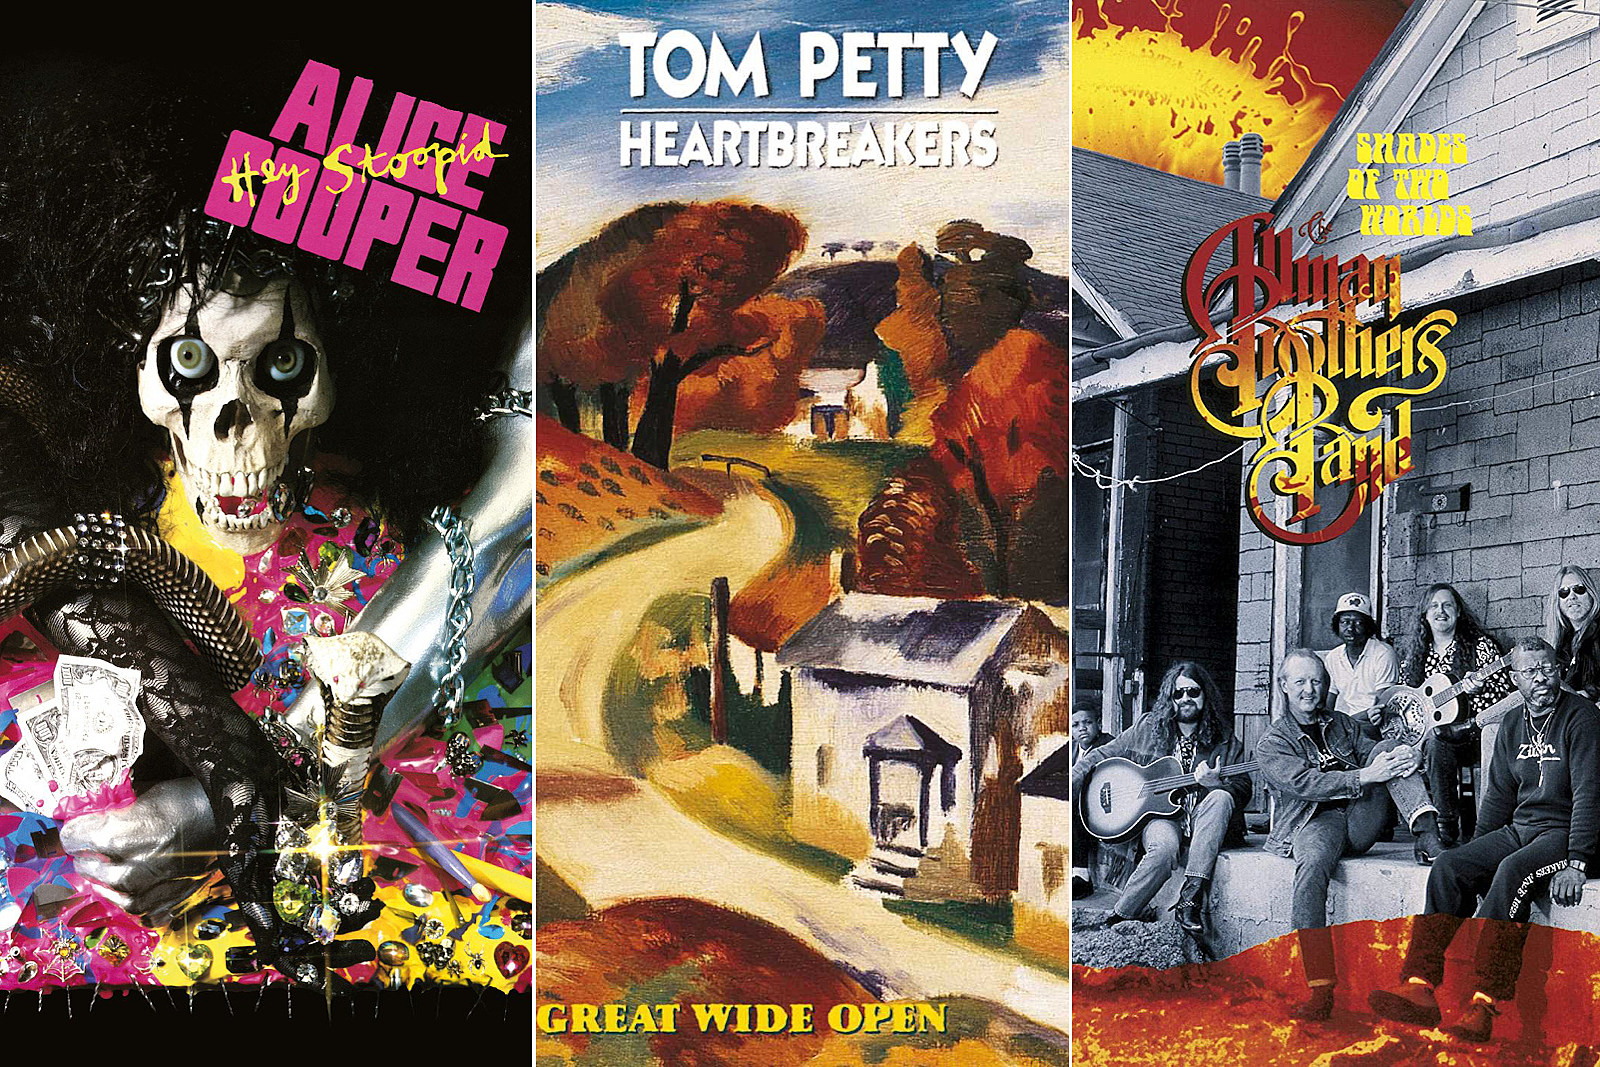 The Day Tom Petty, Alice Cooper and the Allmans Issued Key LPs